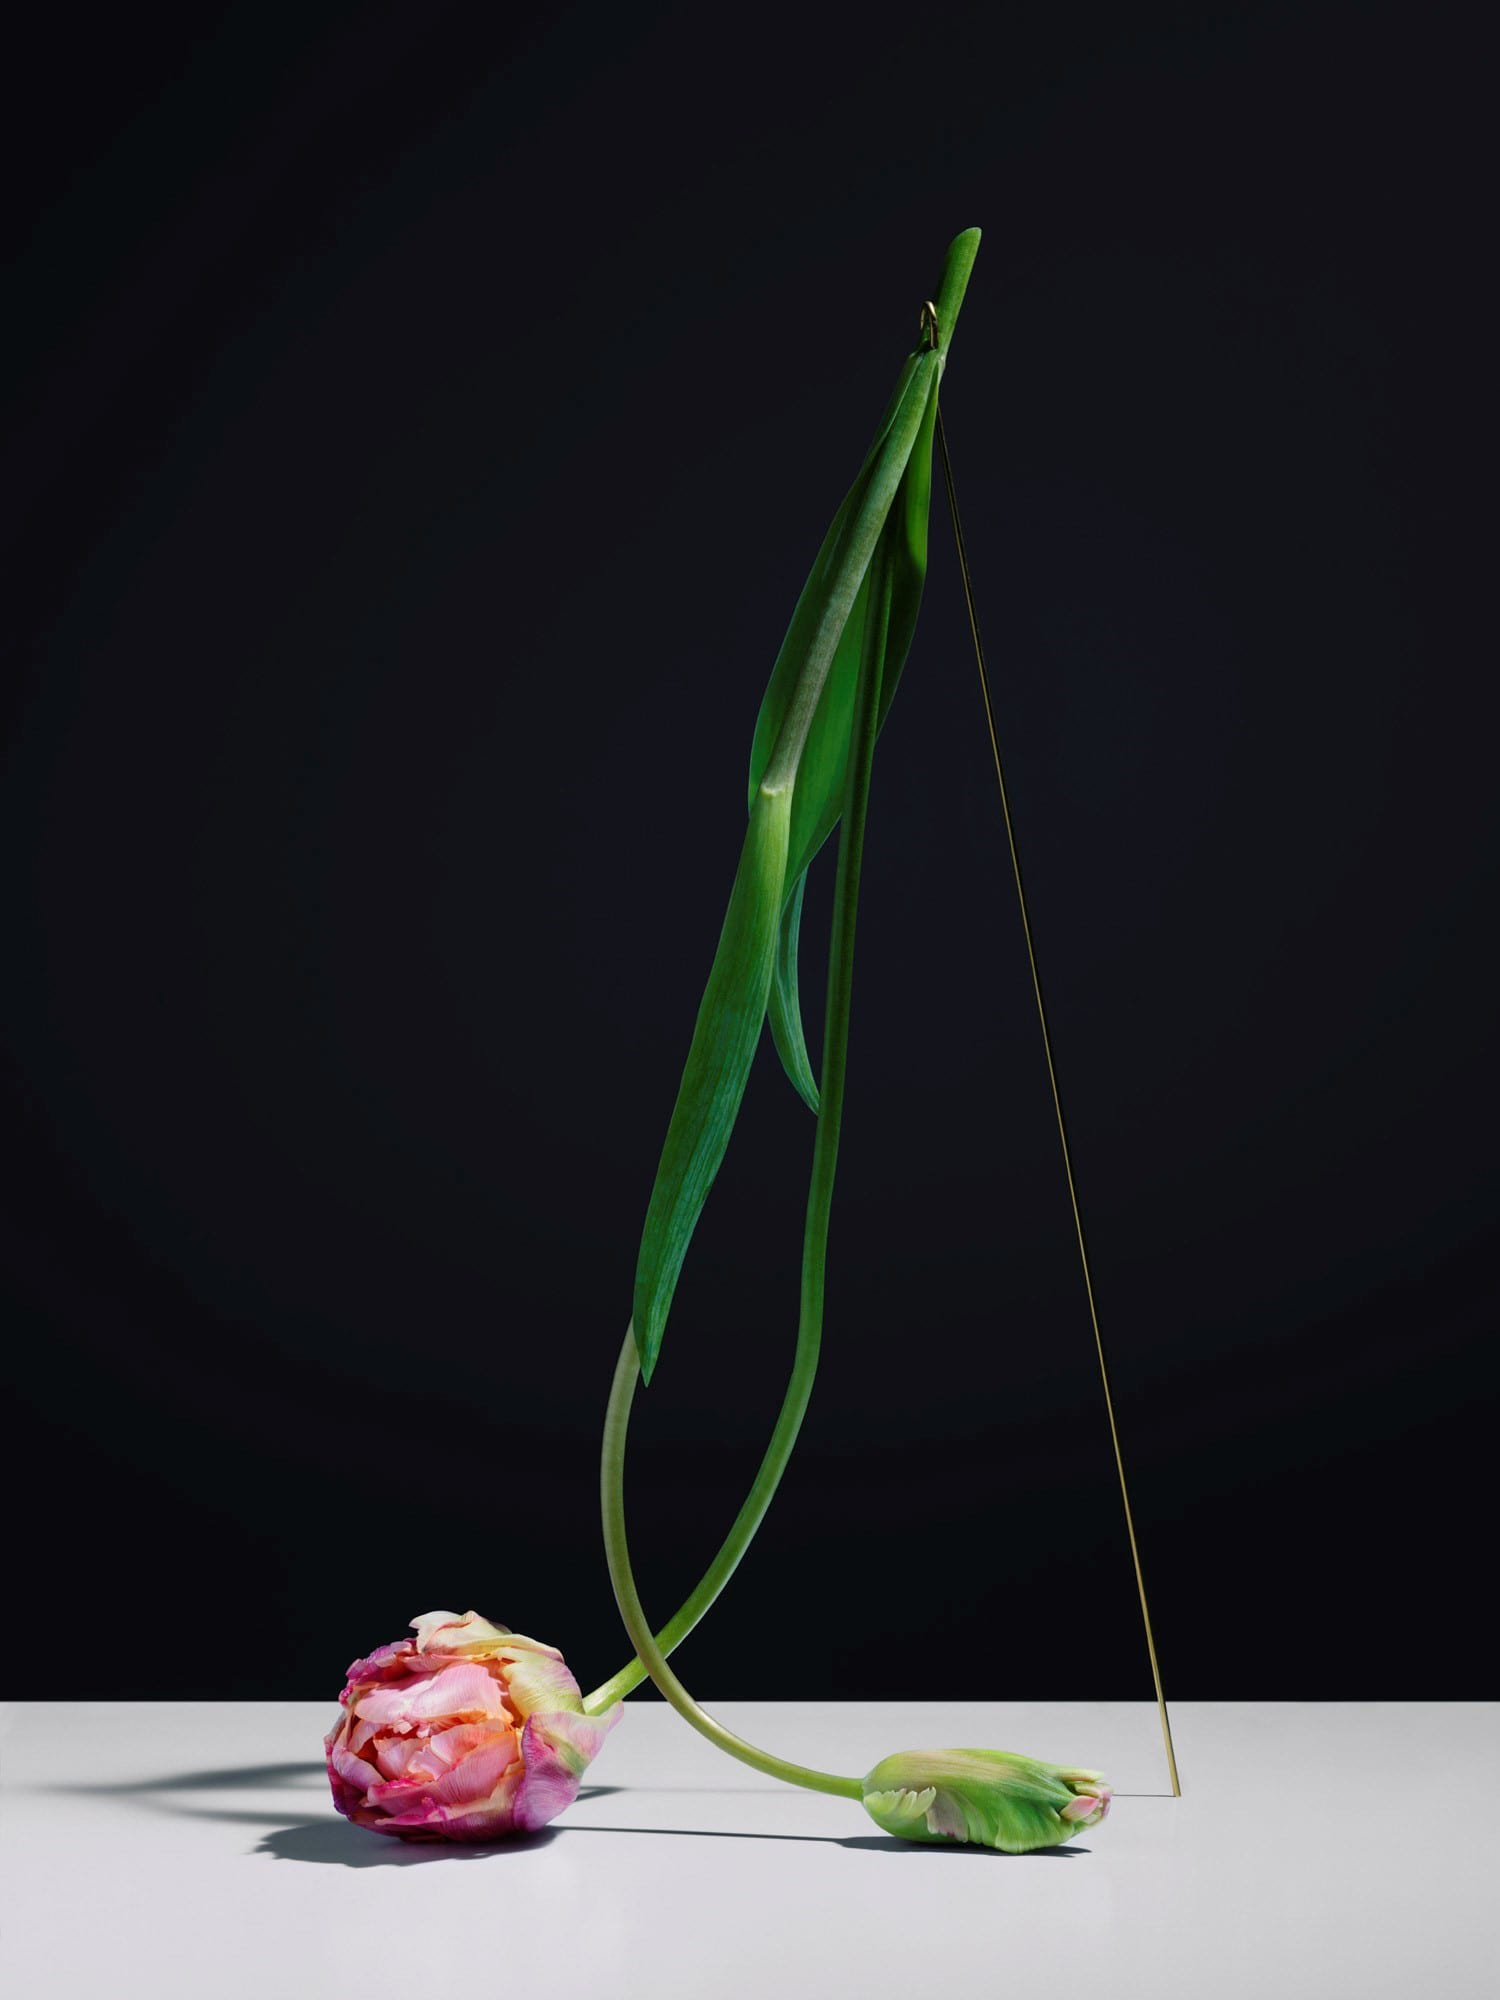 Carl Kleiner Short Film Elevates Dying Tulips Into Art | Yellowtrace